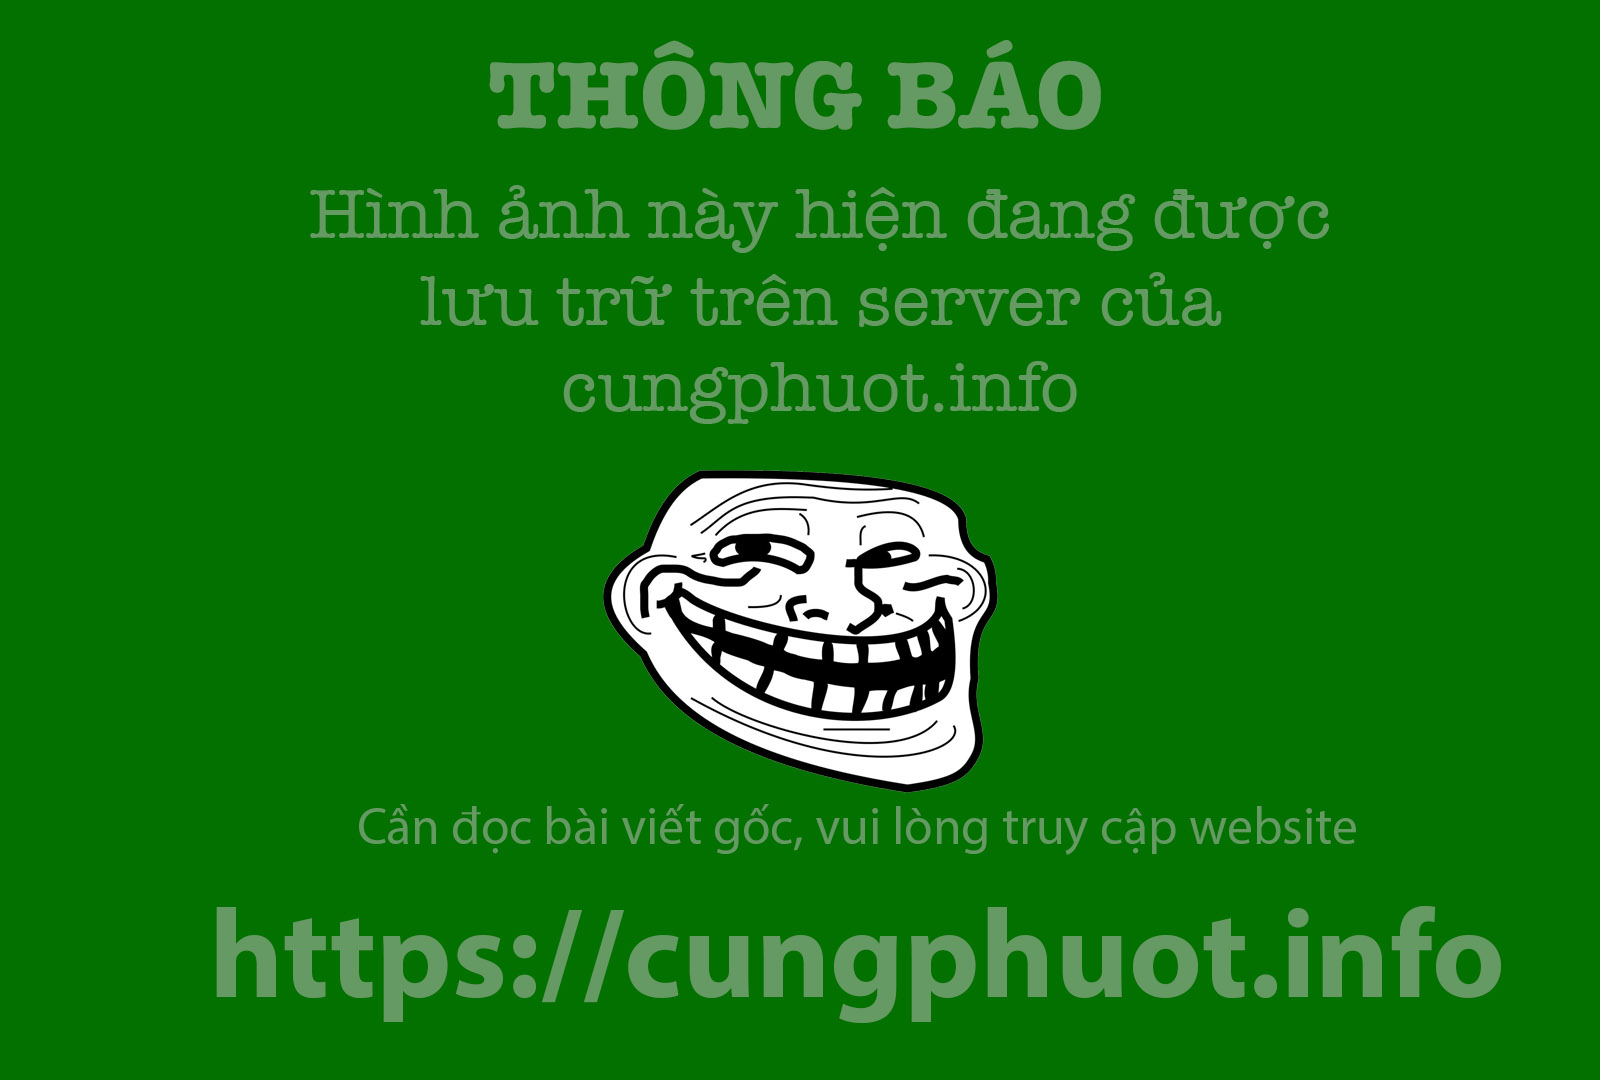 9 cung duong deo hung vi khien tin do du lich muon chinh phuc hinh anh 4